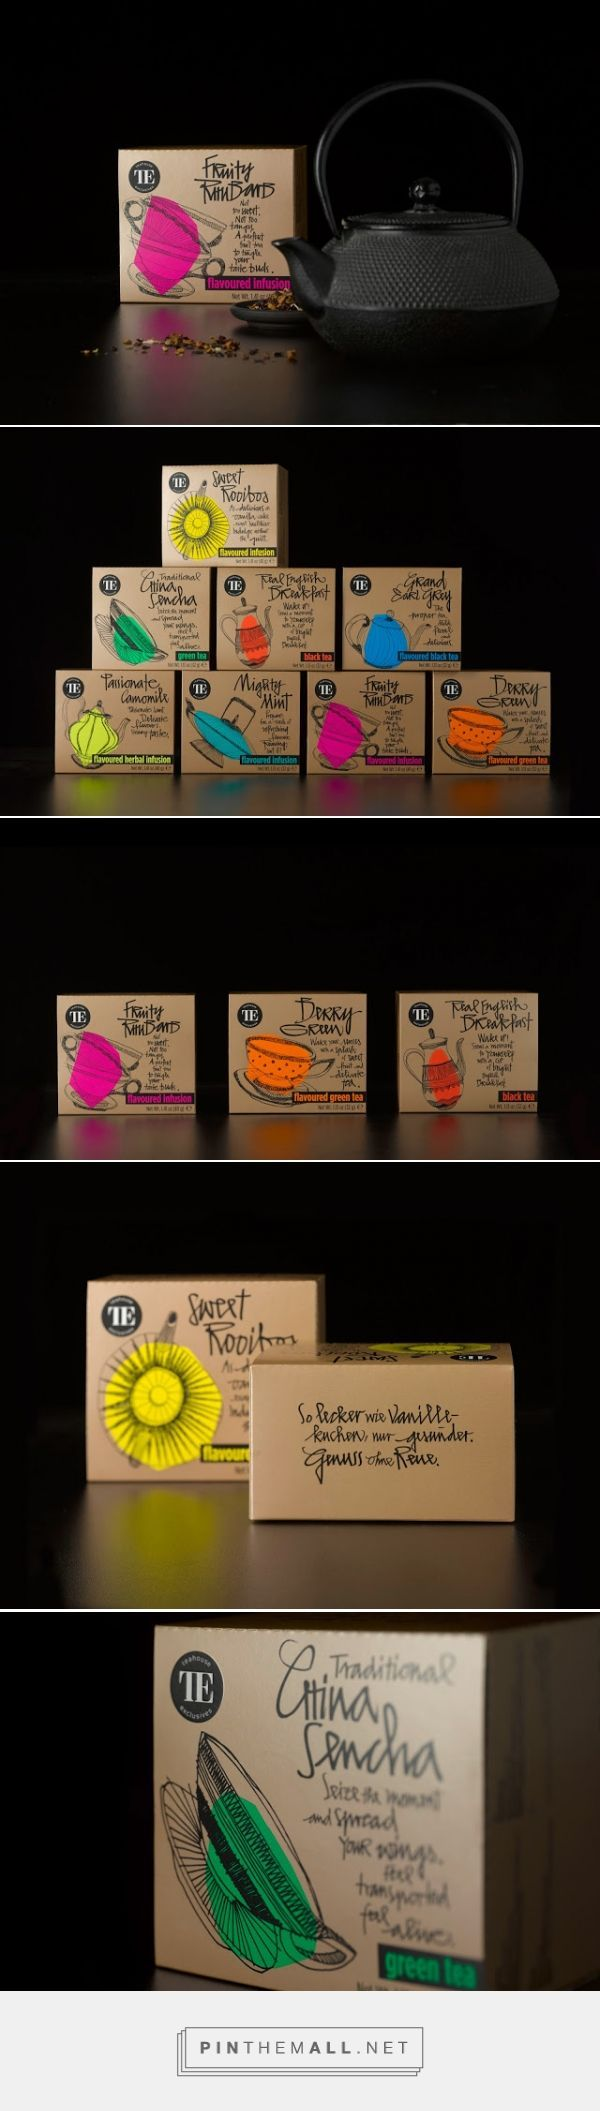 Teahouse Exclusives - Everyday Line #packaging designed by Peter Schmidt Group - http://www.packagingoftheworld.com/2015/03/teahouse-exclusives-everyday-line.html